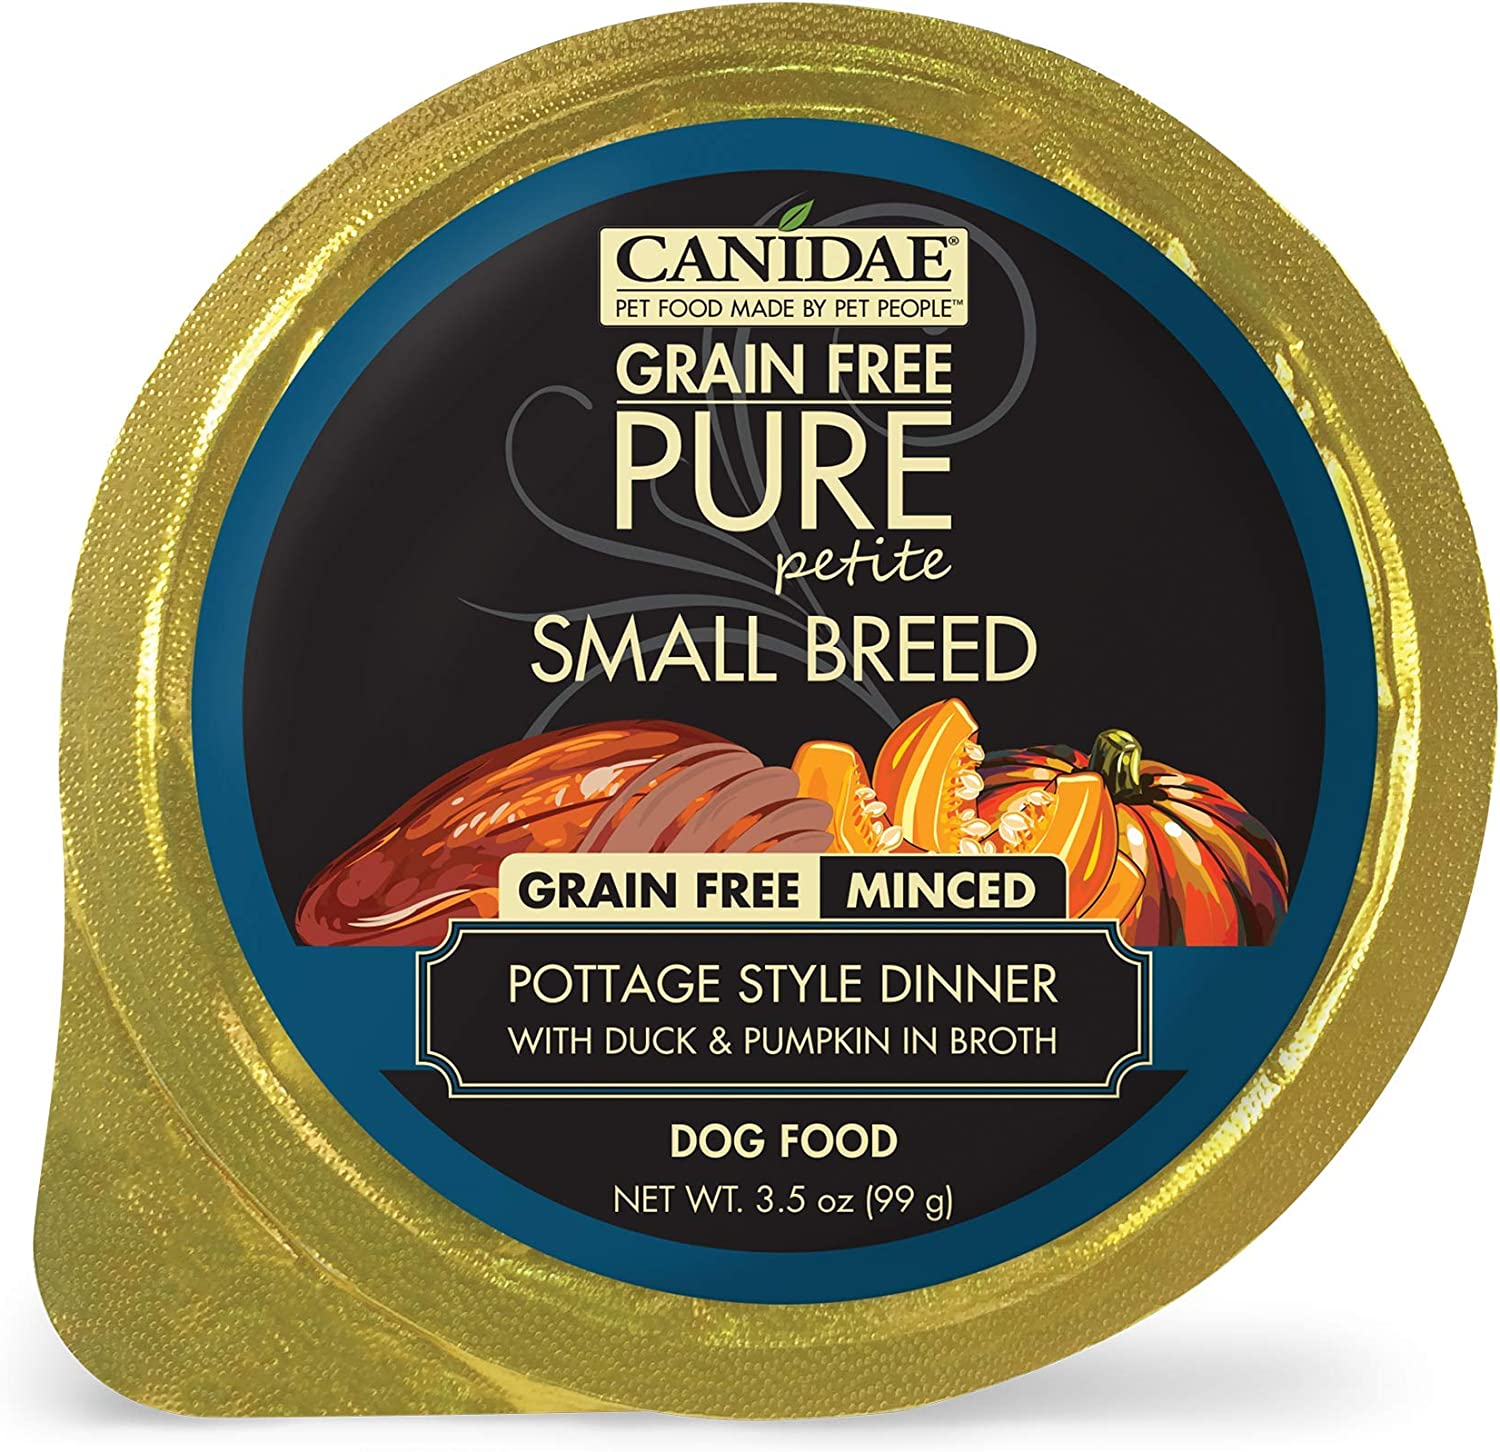 CANIDAE Petite Small Breed, Limited Ingredient Grain Free Wet Dog Food